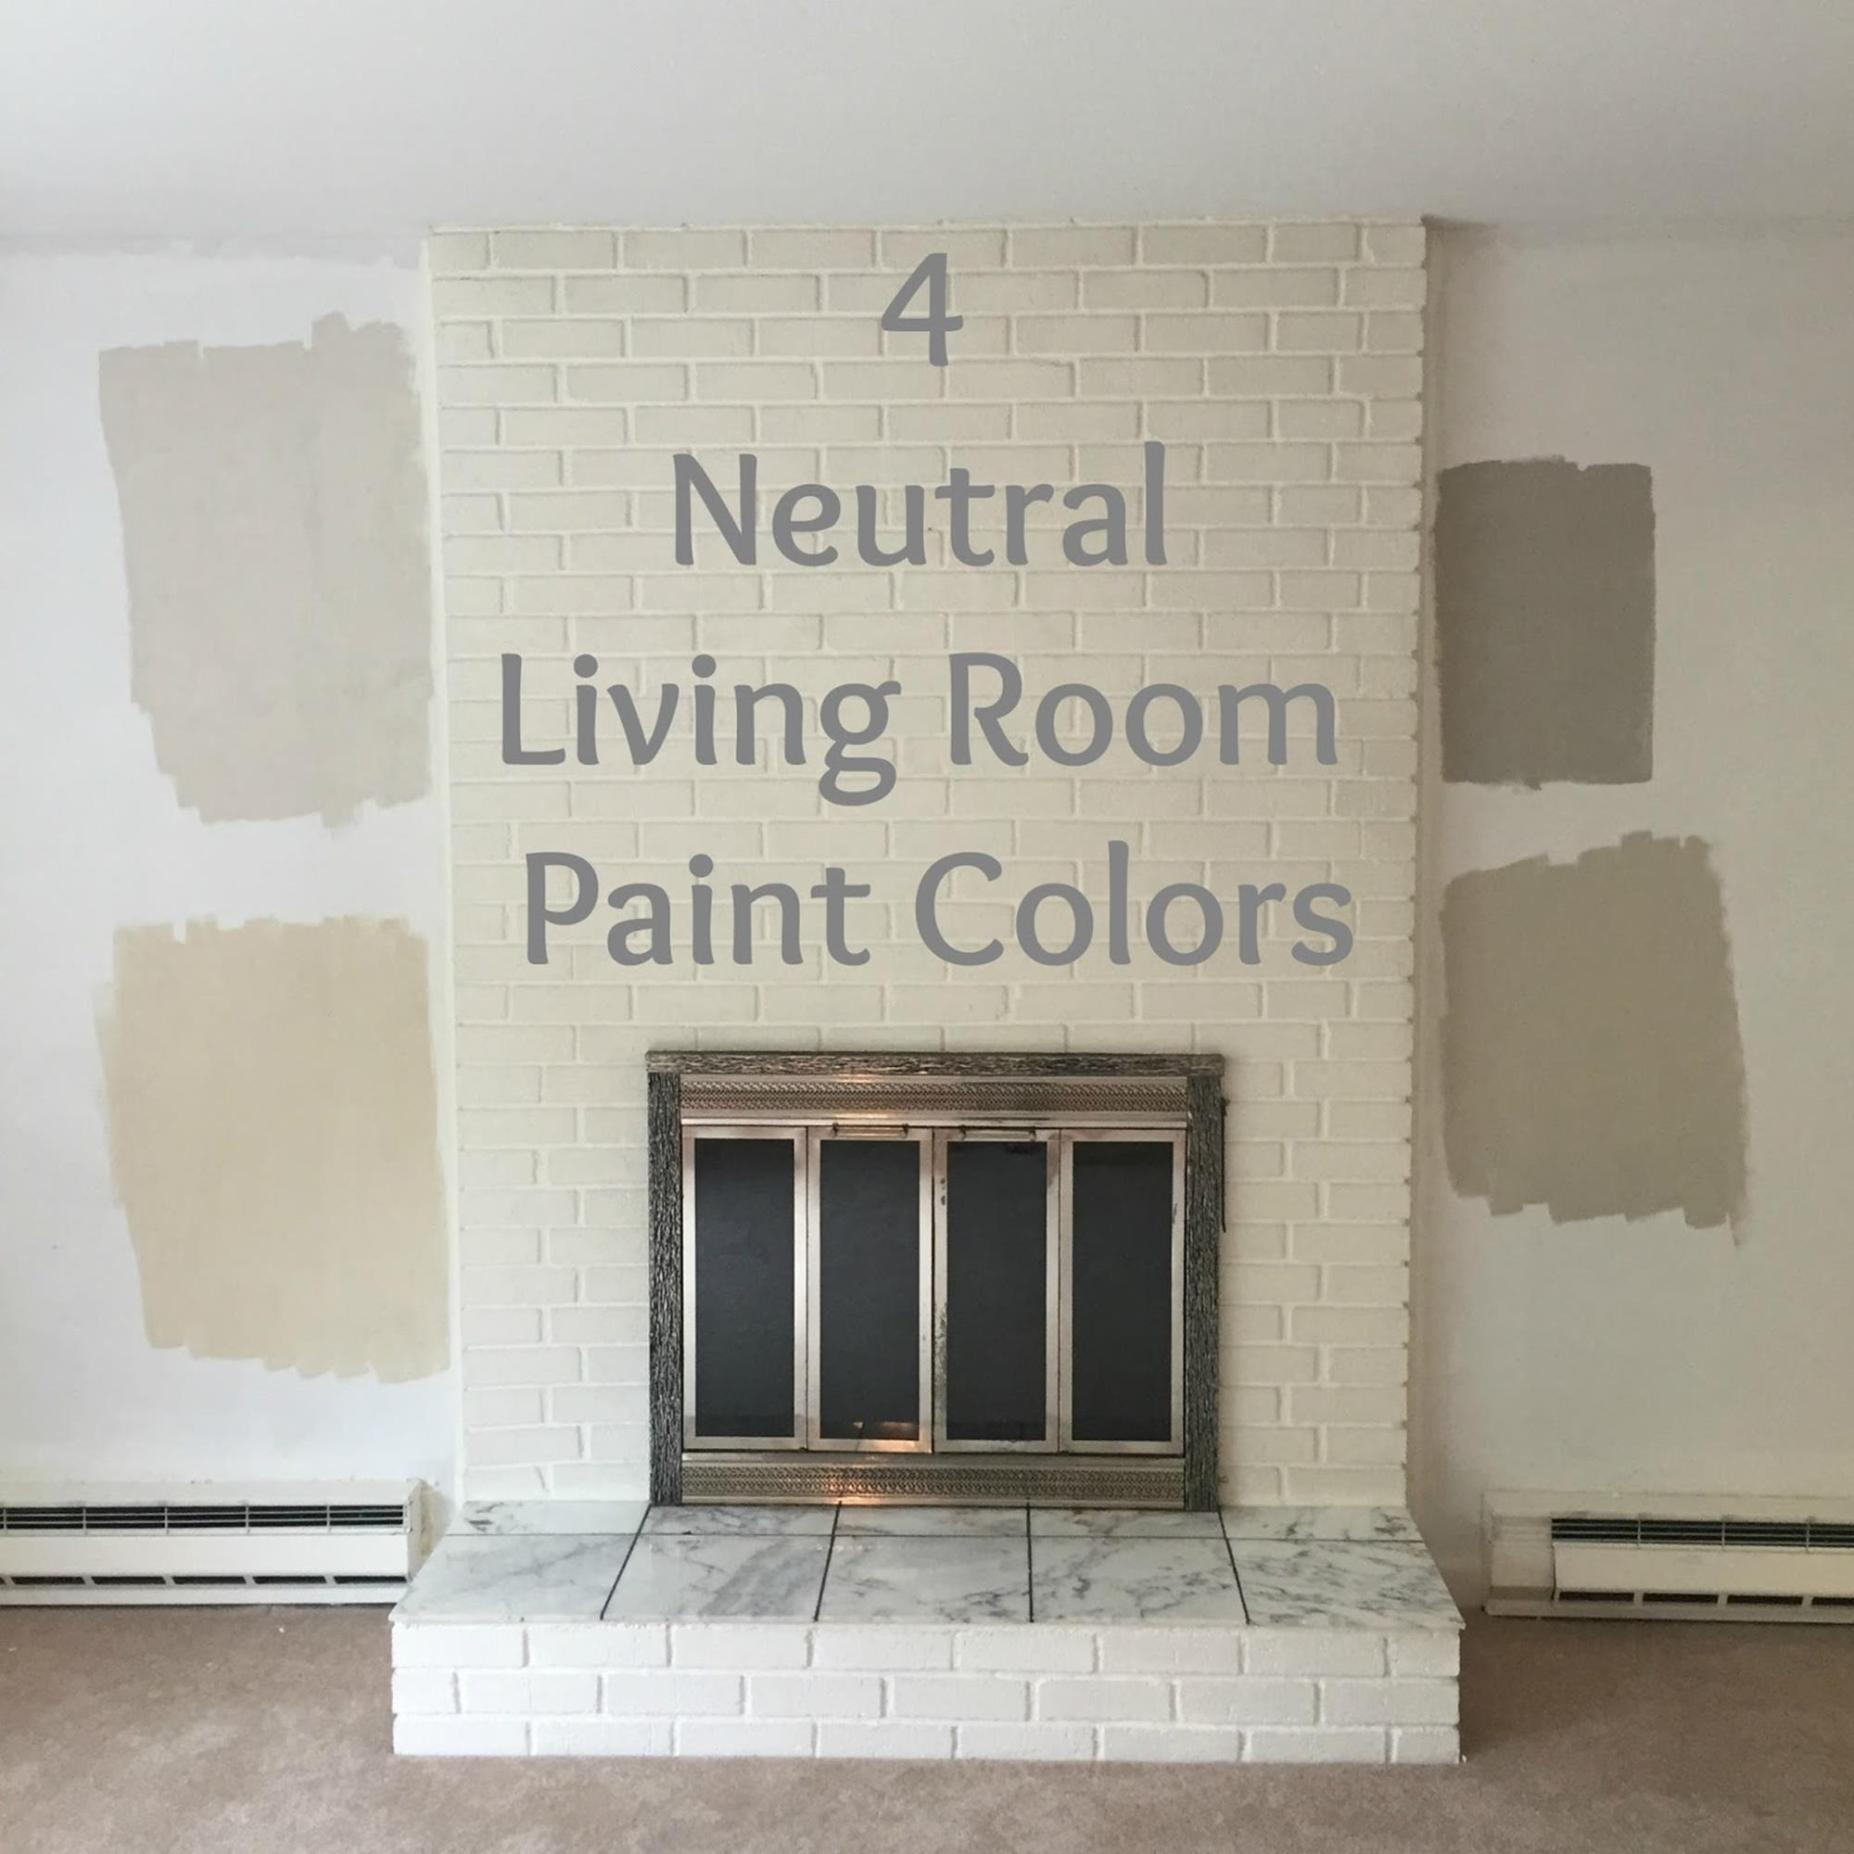 Best Neutral Paint Colors For Living Room 2